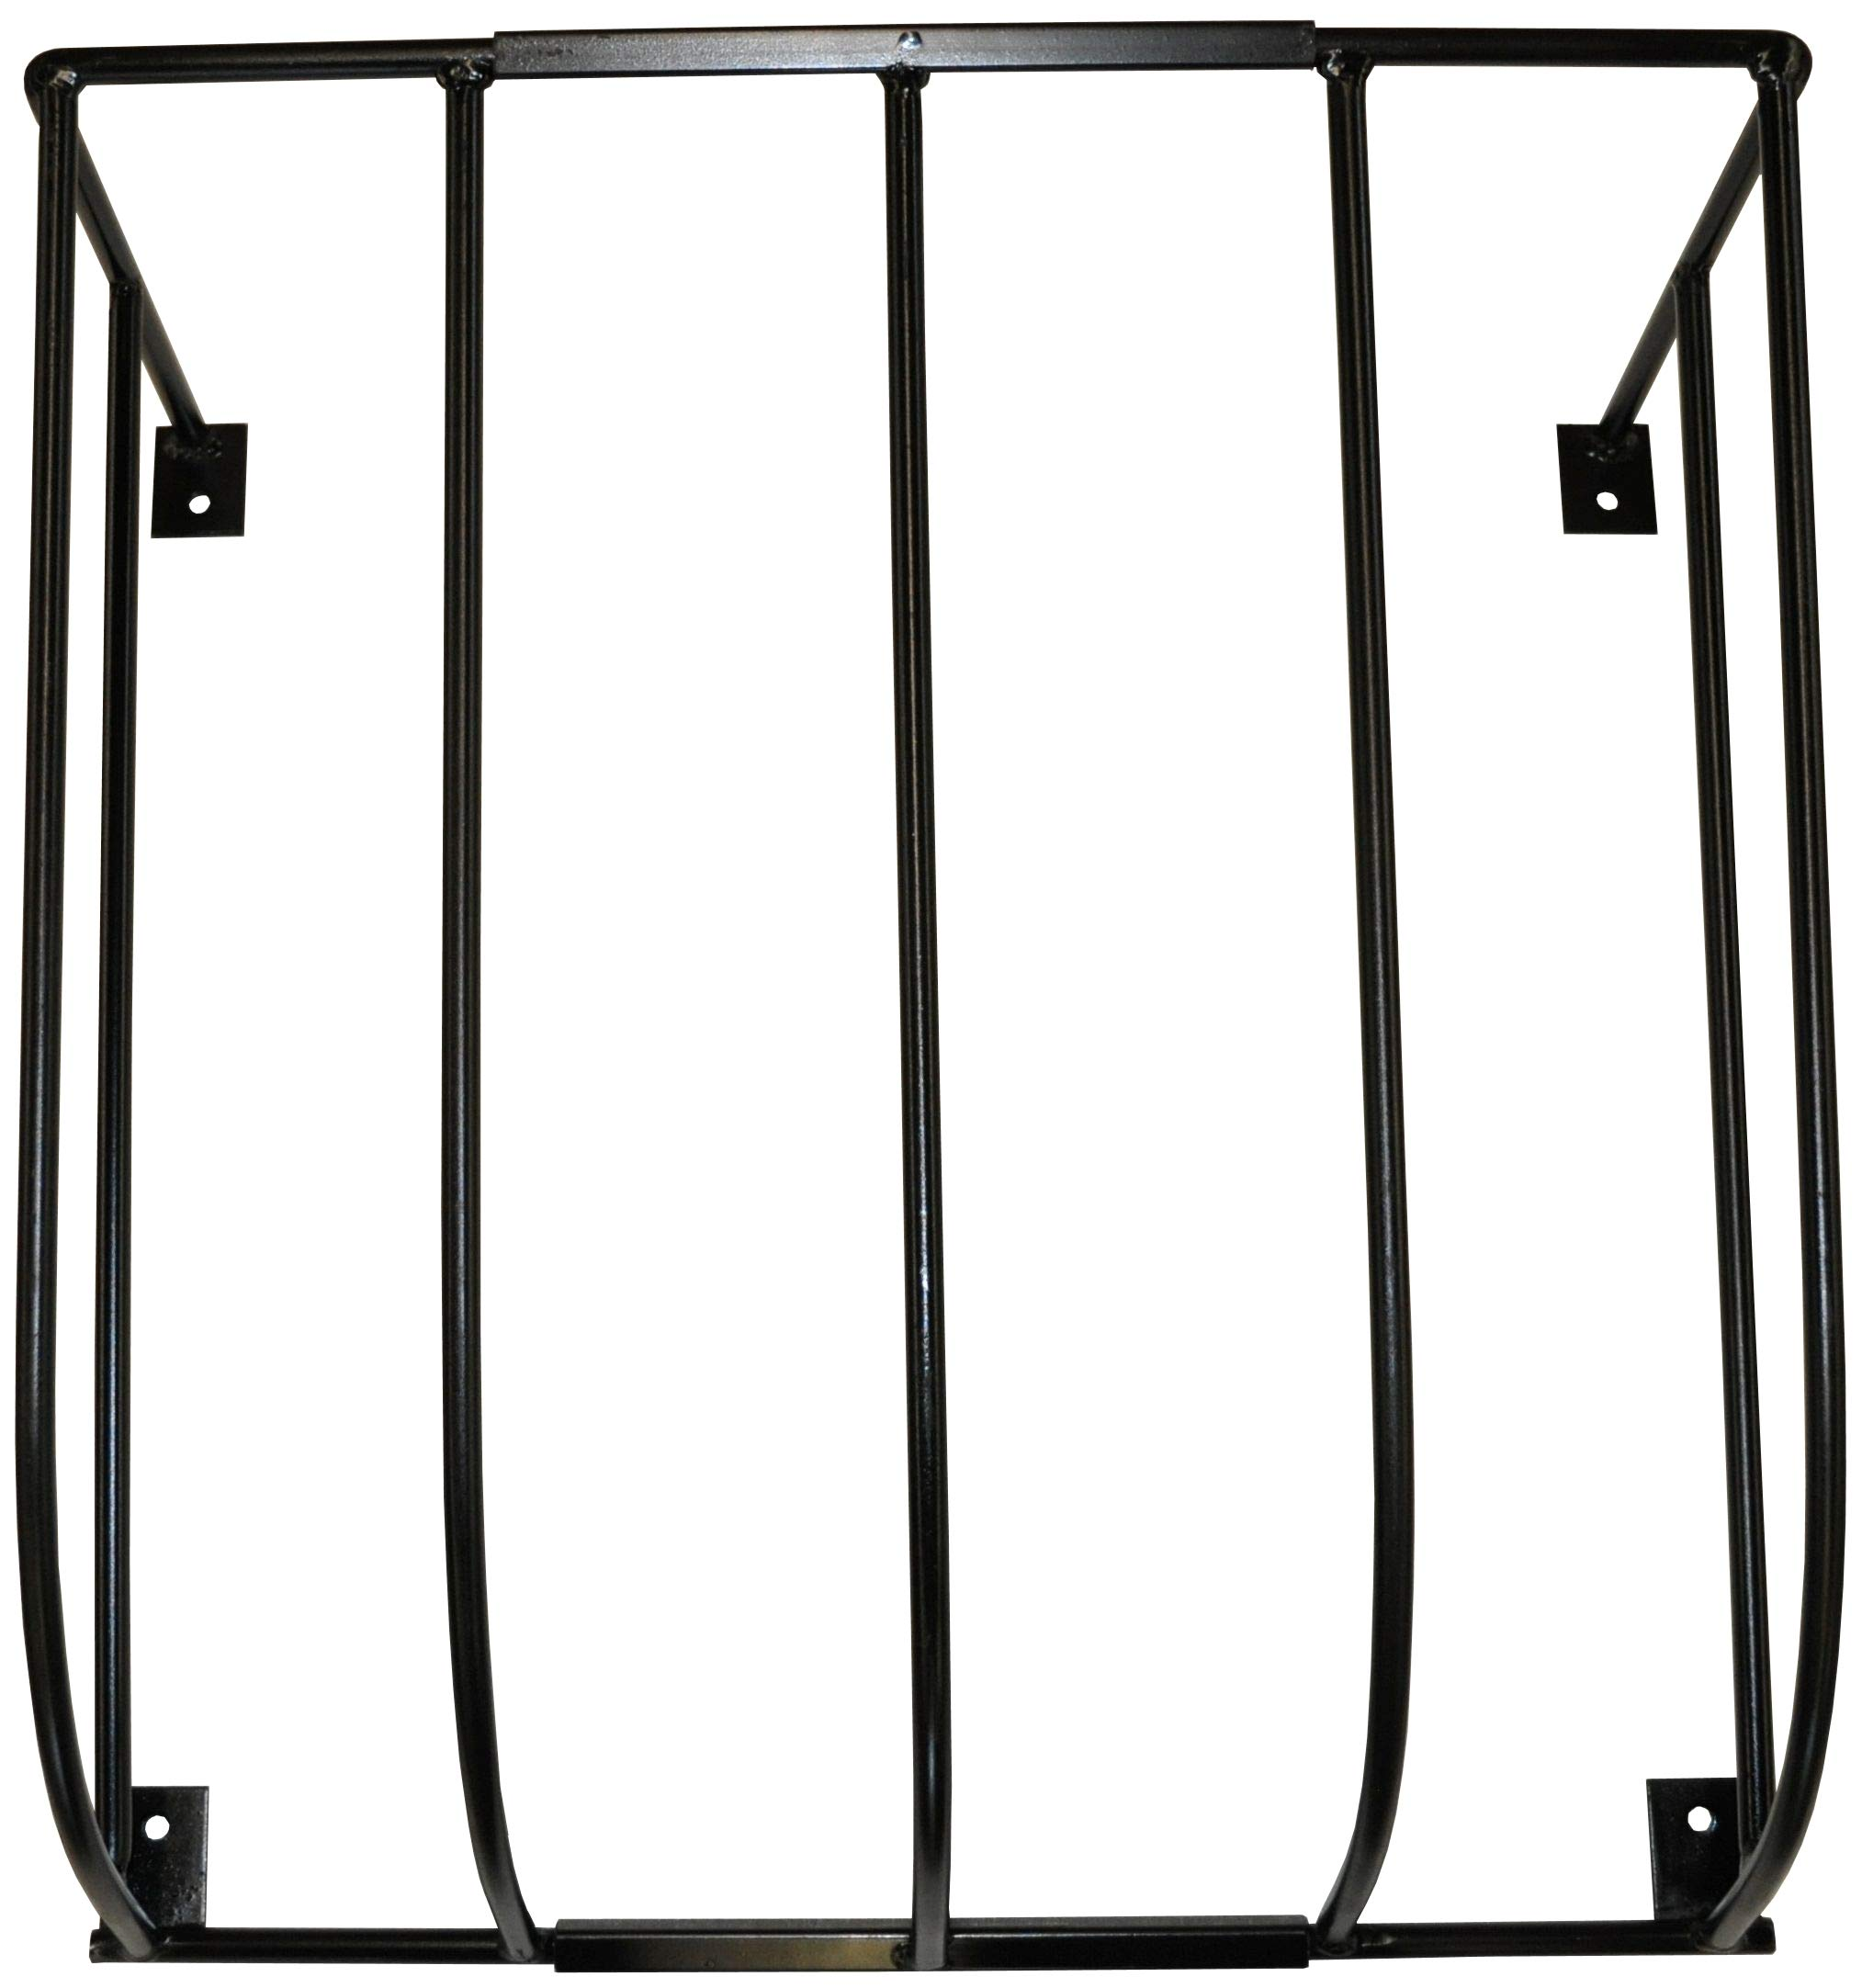 Country Manufacturing Wall Mount Hay Rack for Horse Stalls. Package of 2 by Country Manufacturing